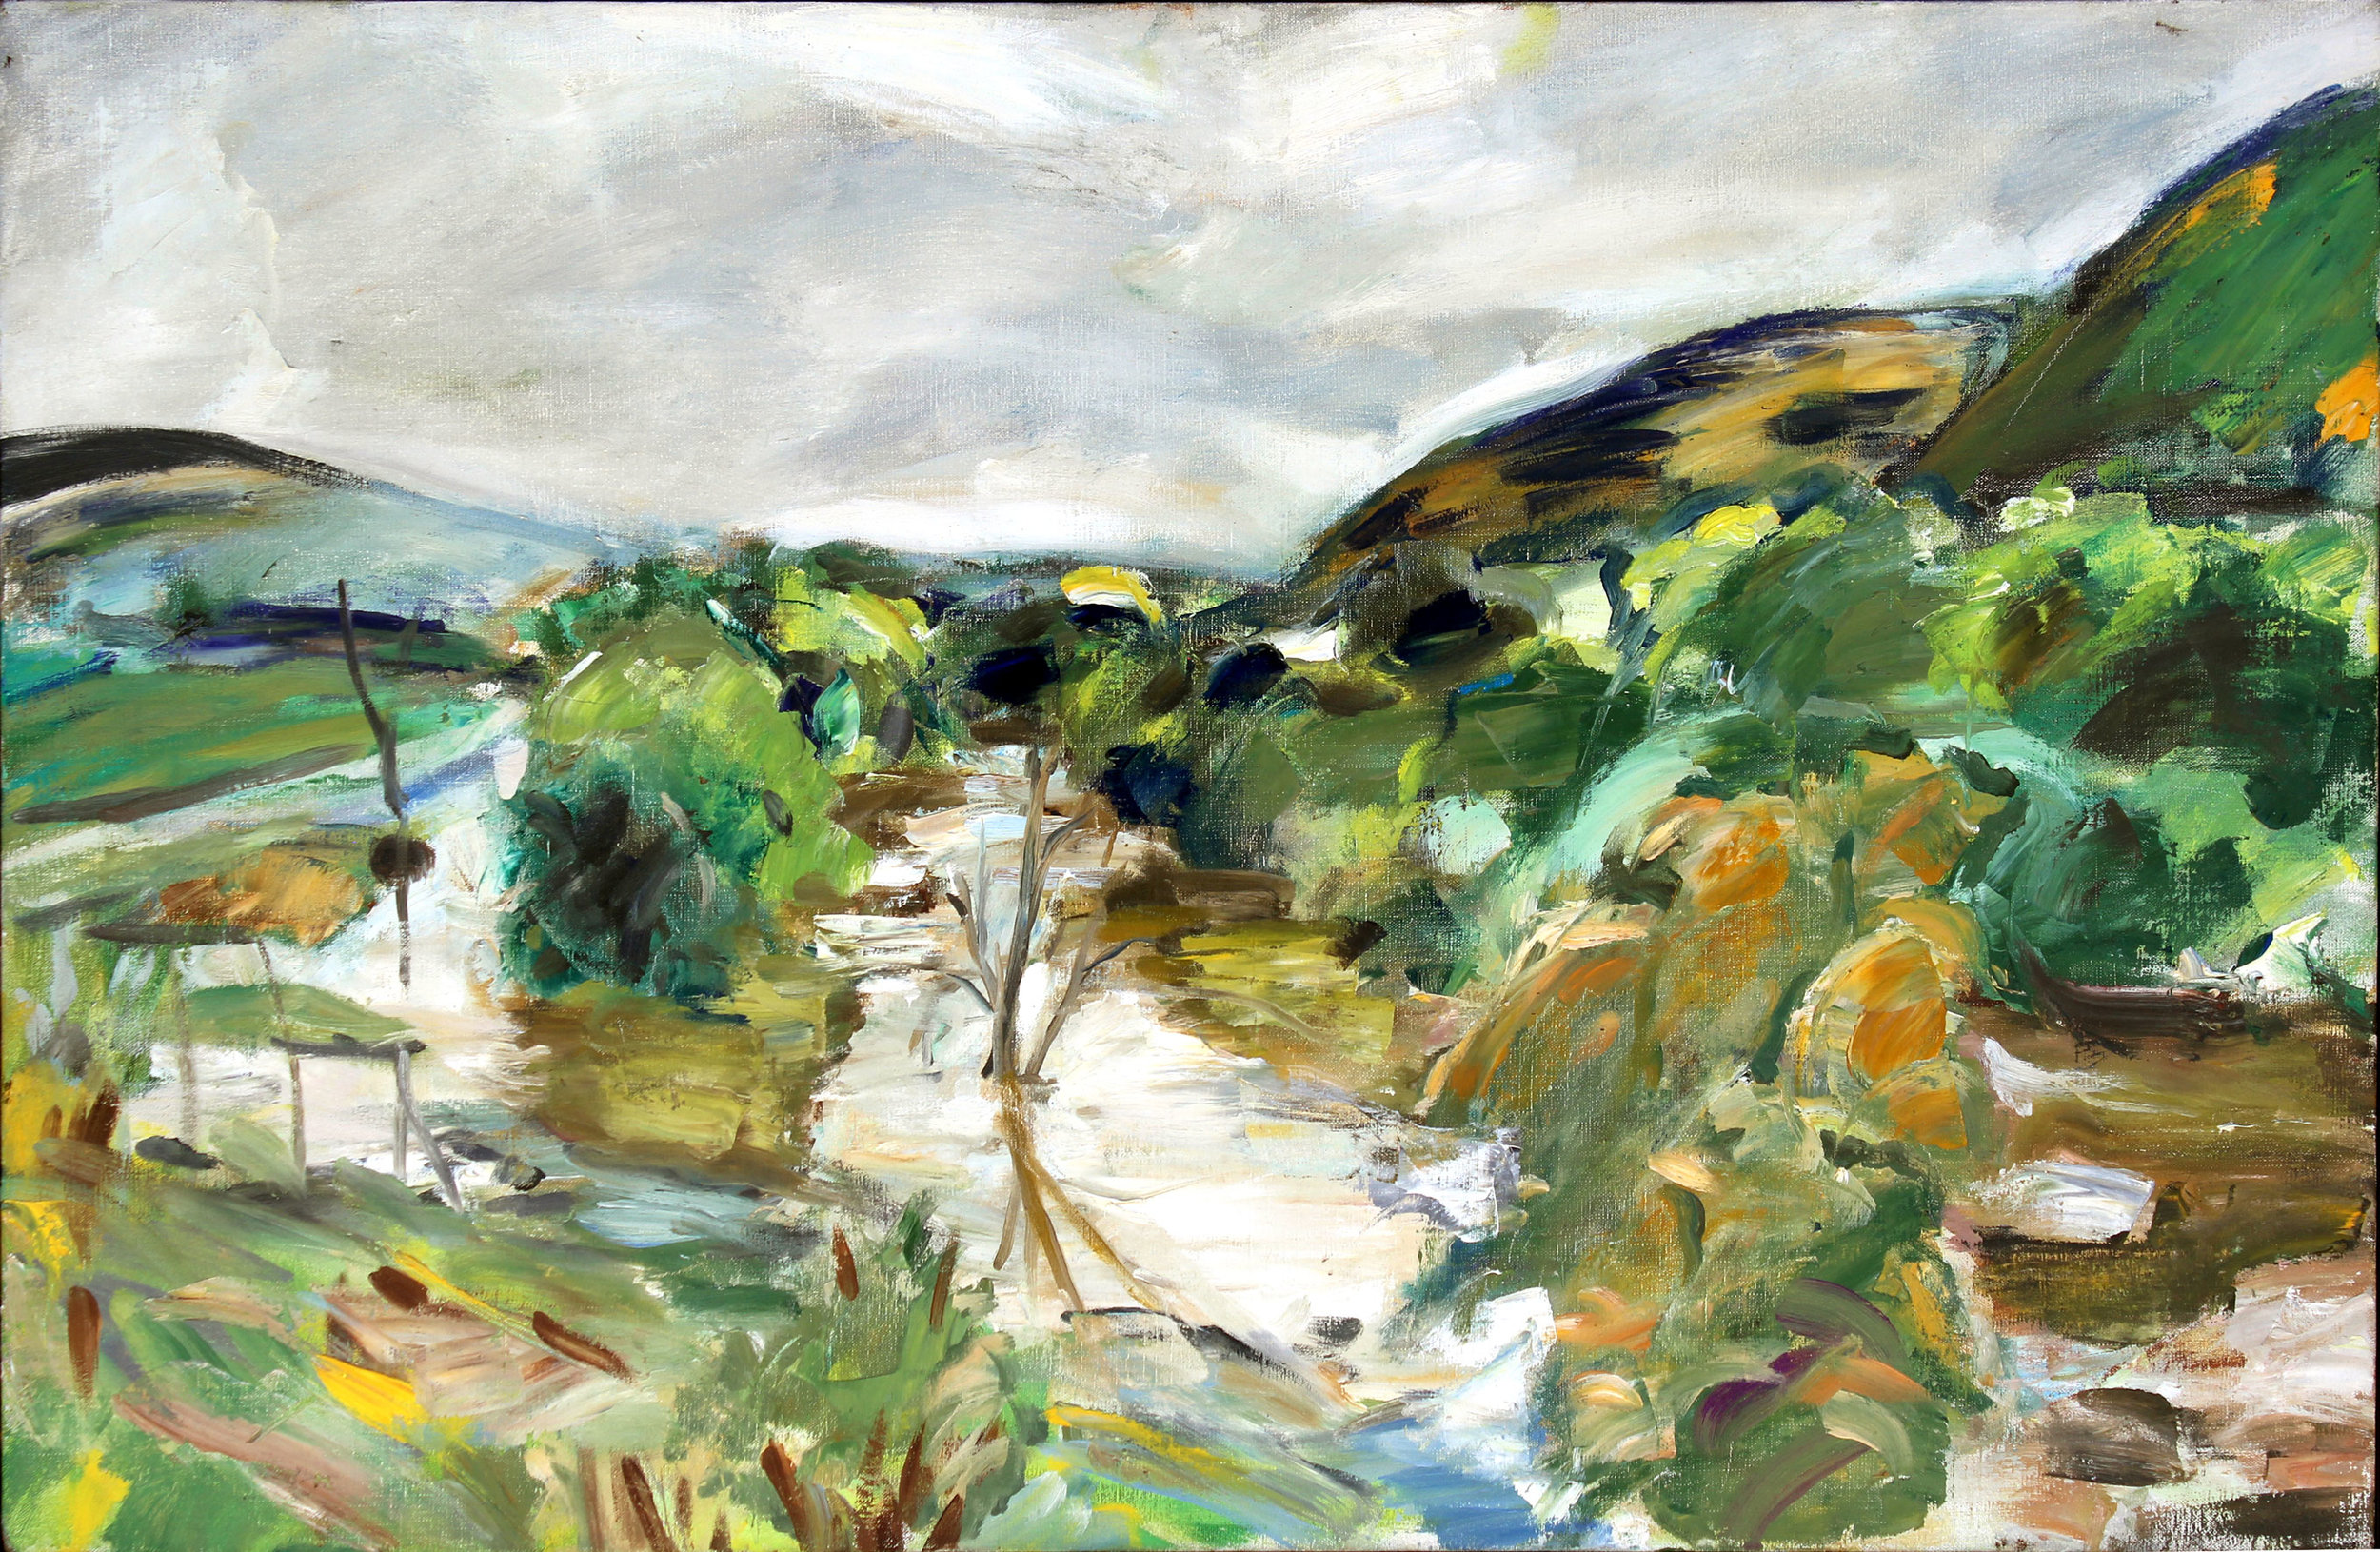 NB6-Flooded-Susquehanna-24x37-oil.canvas.jpg